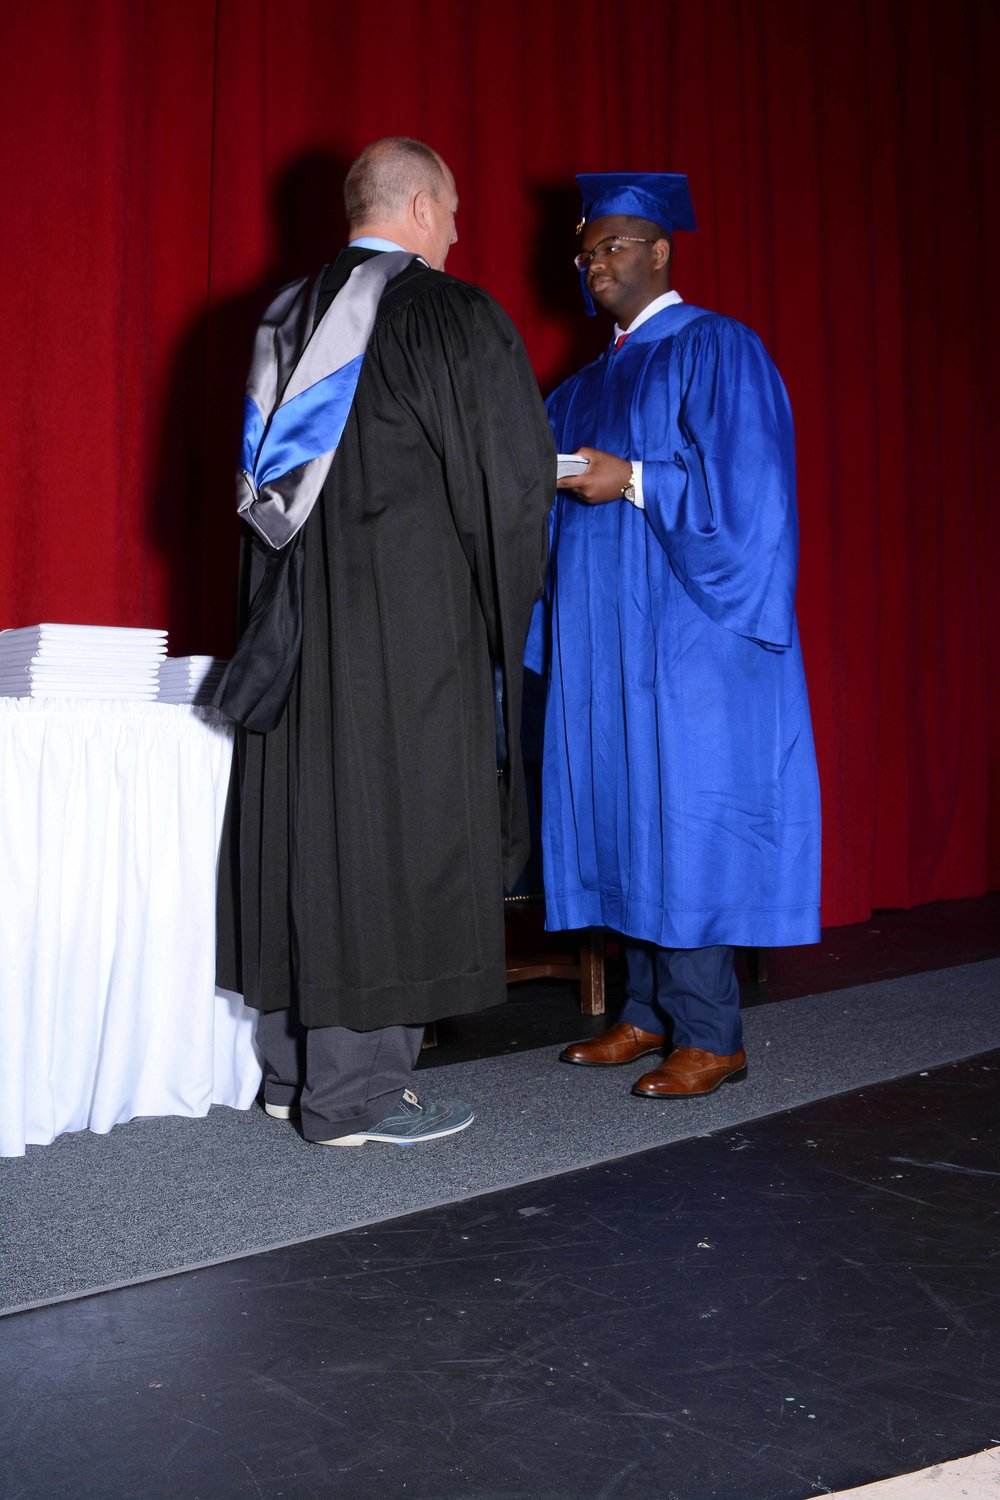 May14 Commencement123.jpg